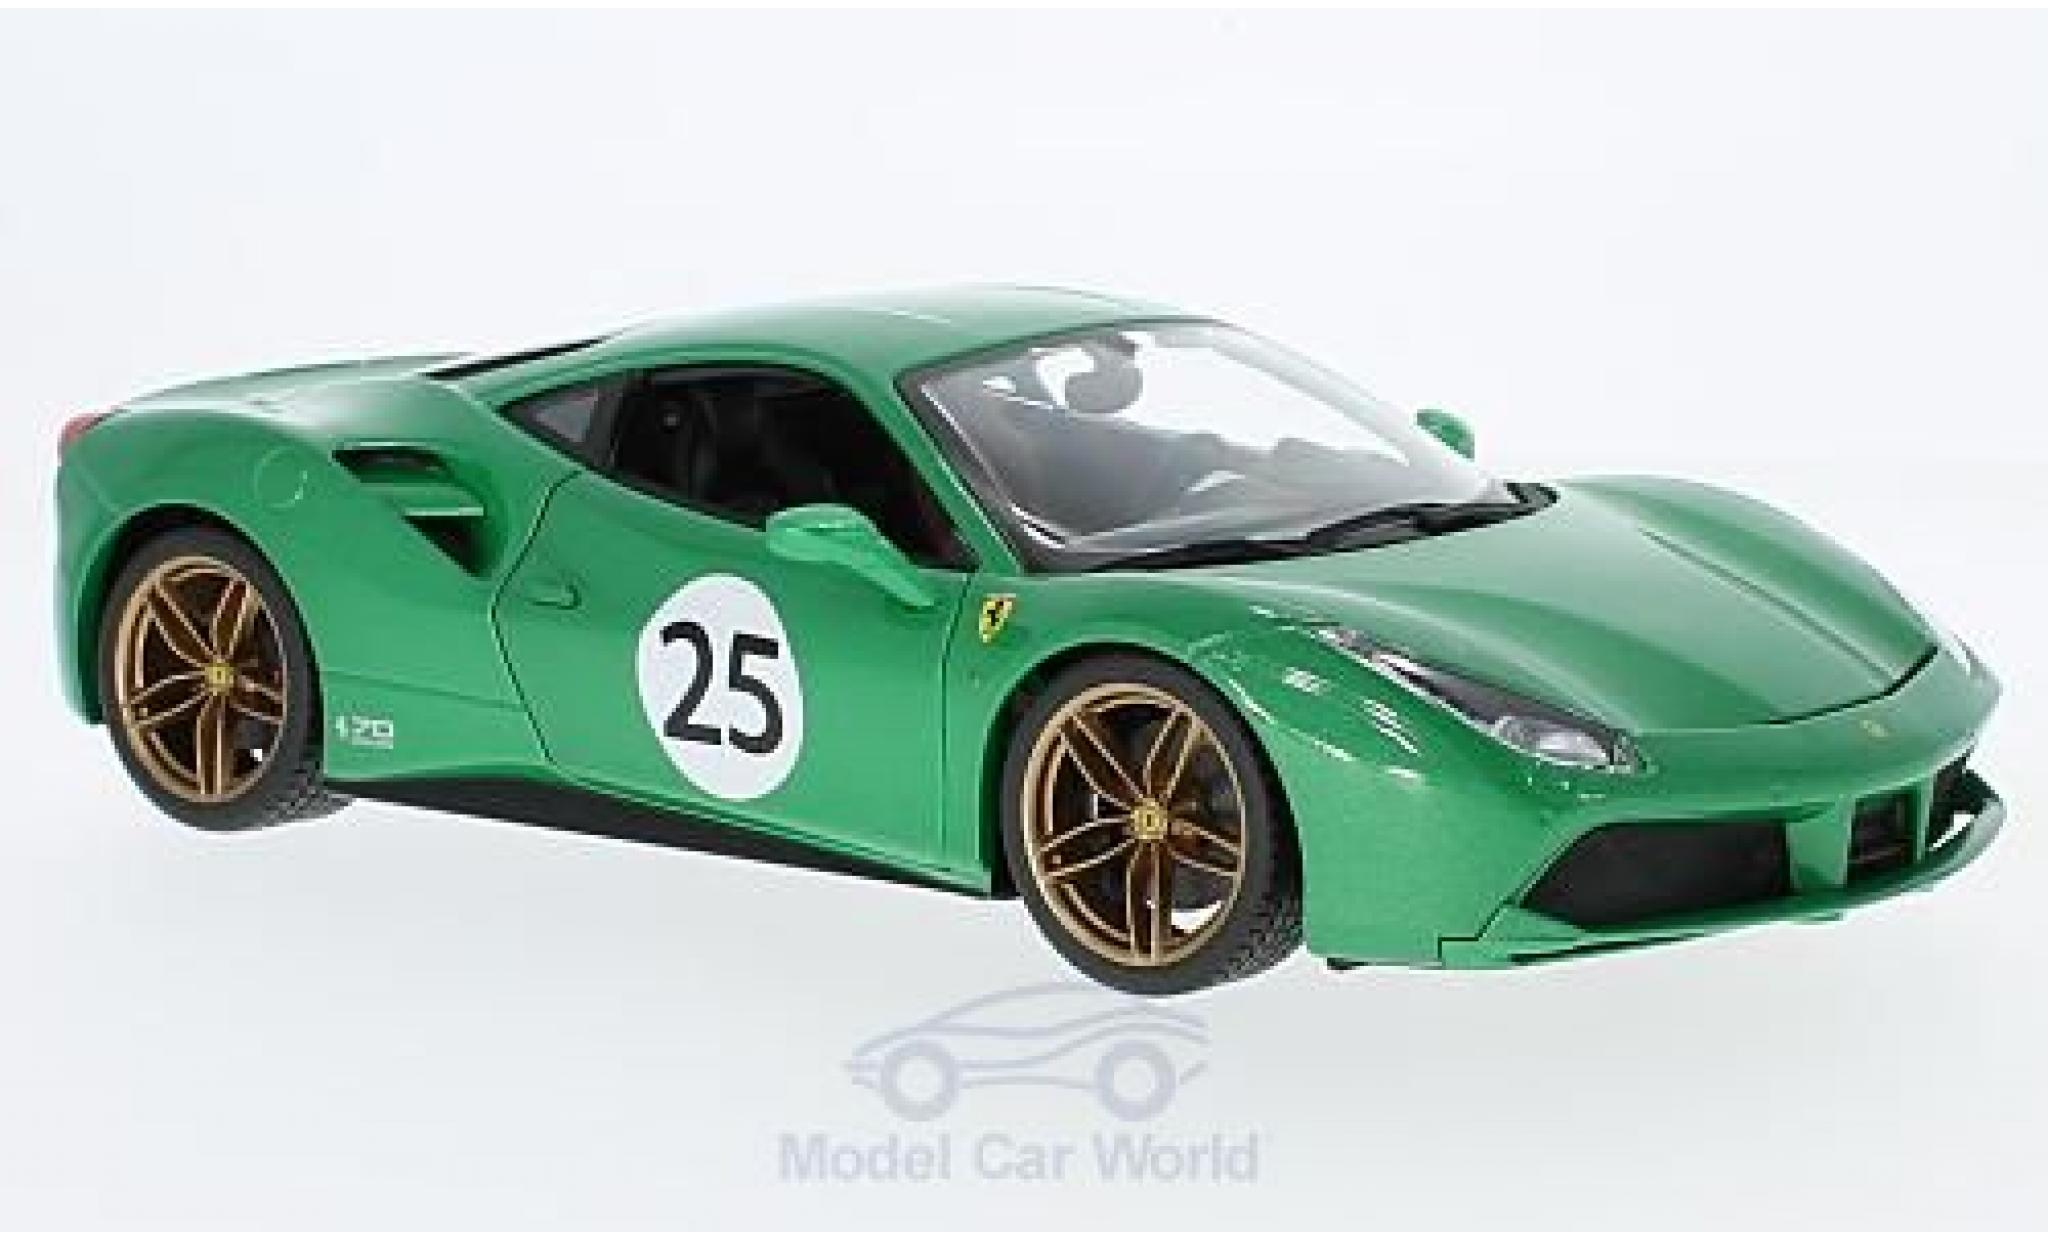 Ferrari 488 1/18 Bburago GTB metallic green The Green Jewel 70 Jahre